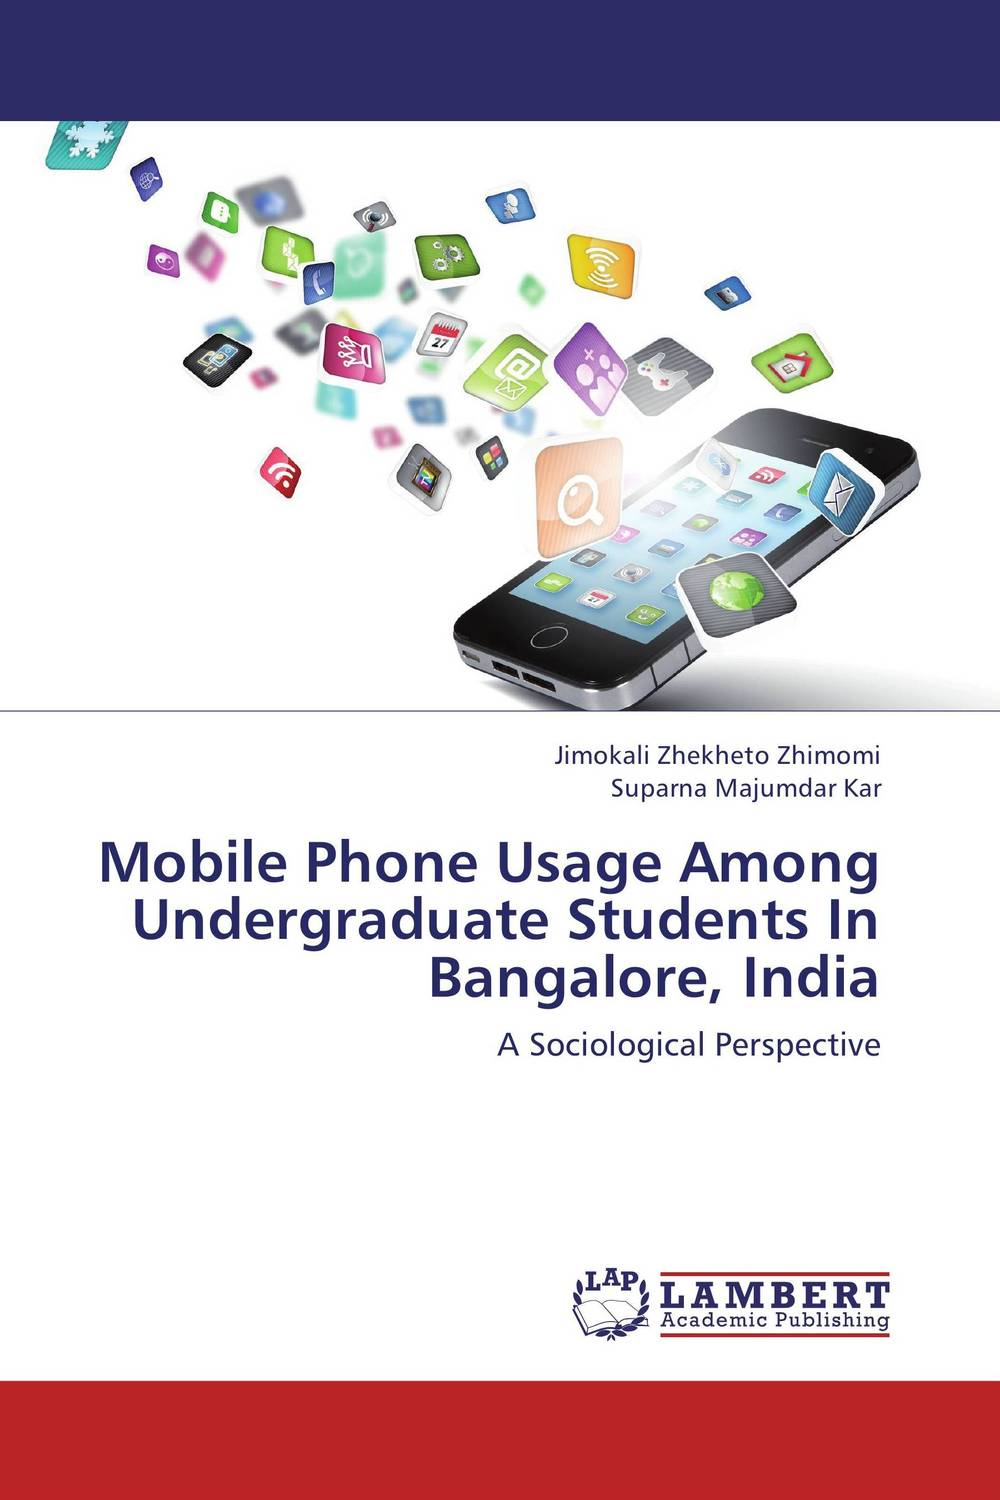 купить Mobile Phone Usage Among Undergraduate Students In Bangalore, India недорого